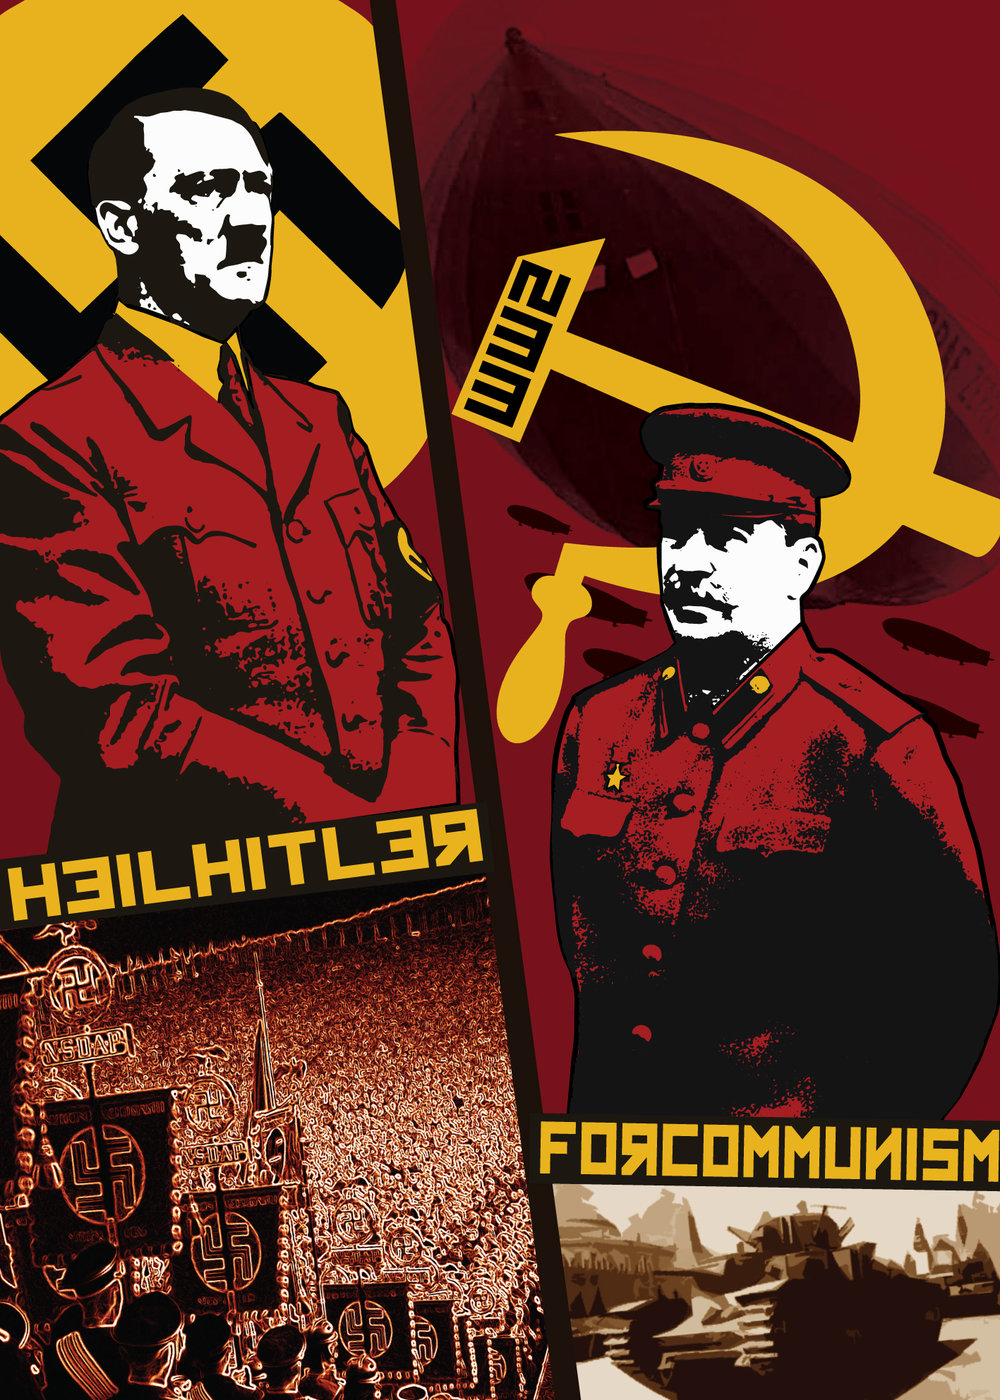 wwii_poster___russian_constructivism_style_by_rayle1112-d5ya9ff.jpg